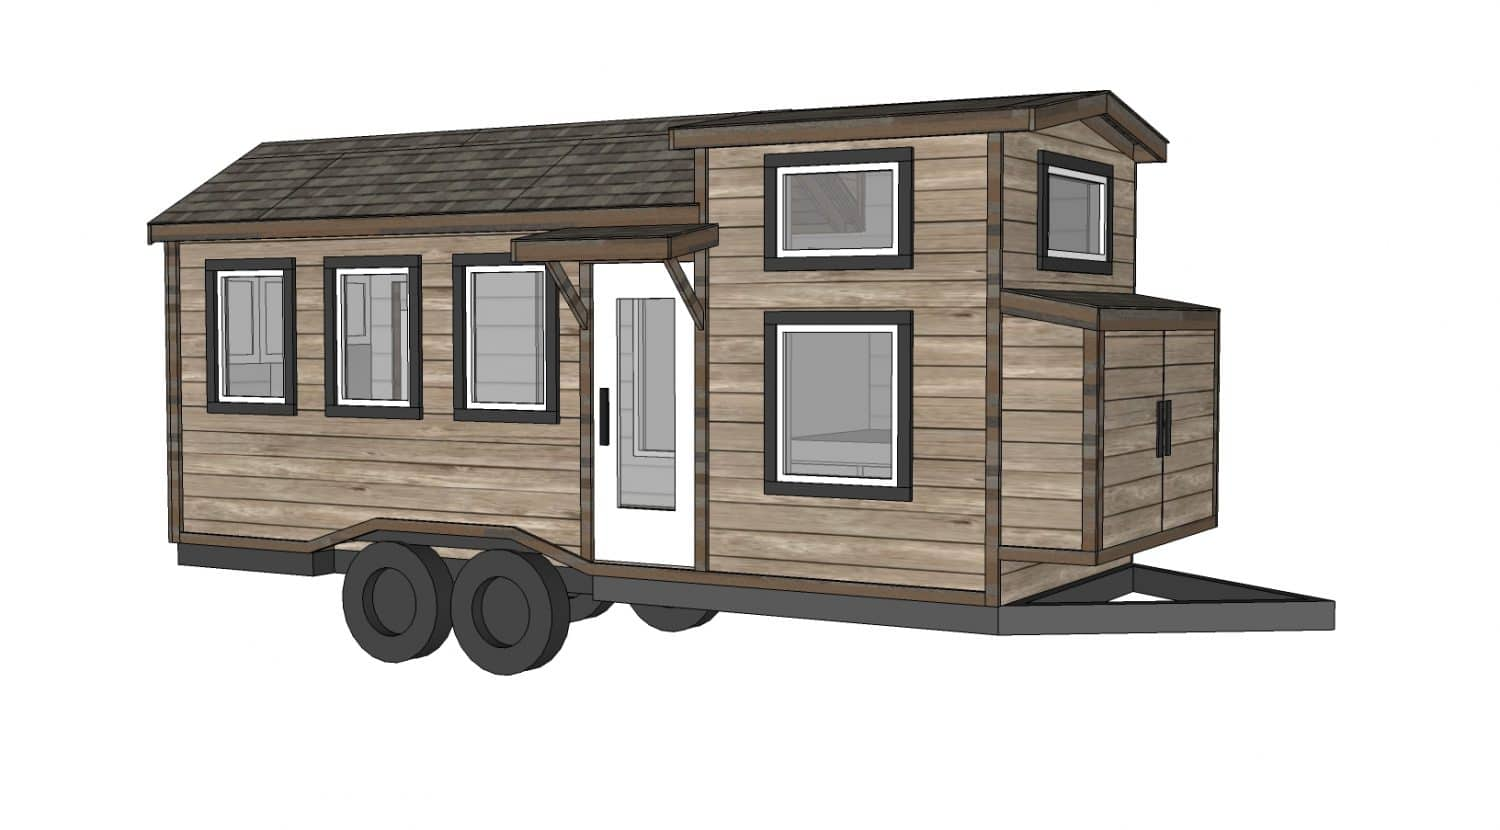 Construire sa propre tiny house plans gratuits et for Tiny home floor plans free